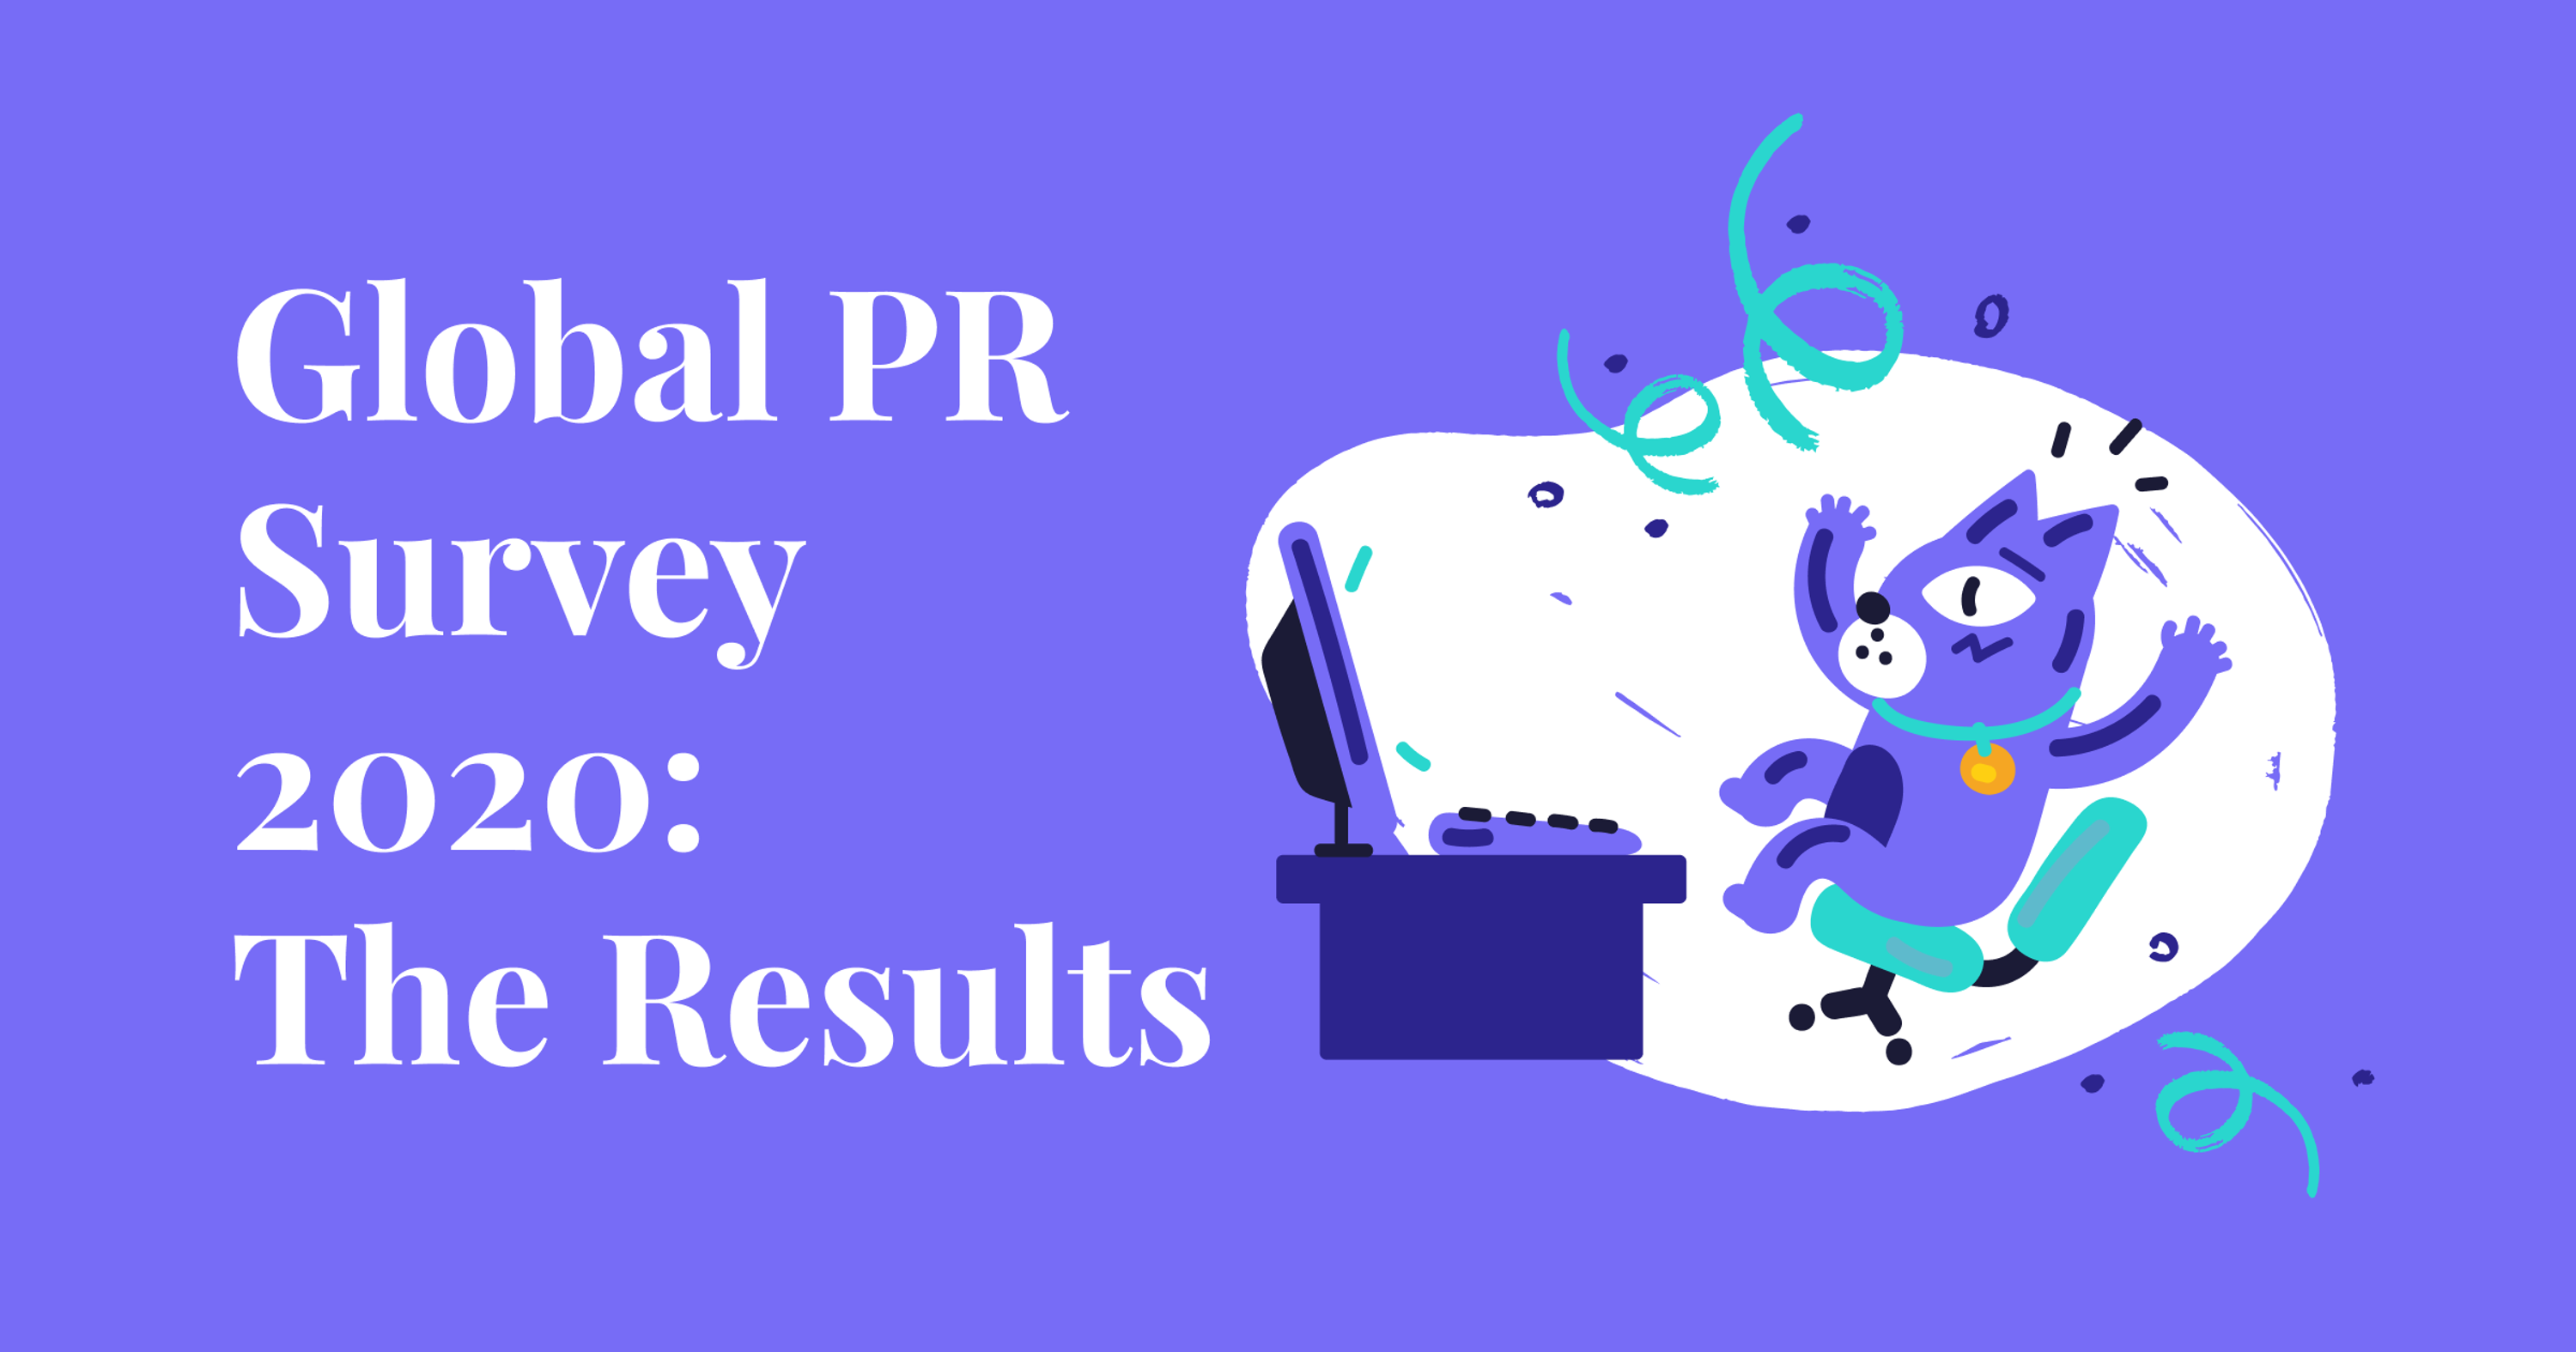 Global PR Survey 2020: Results announced